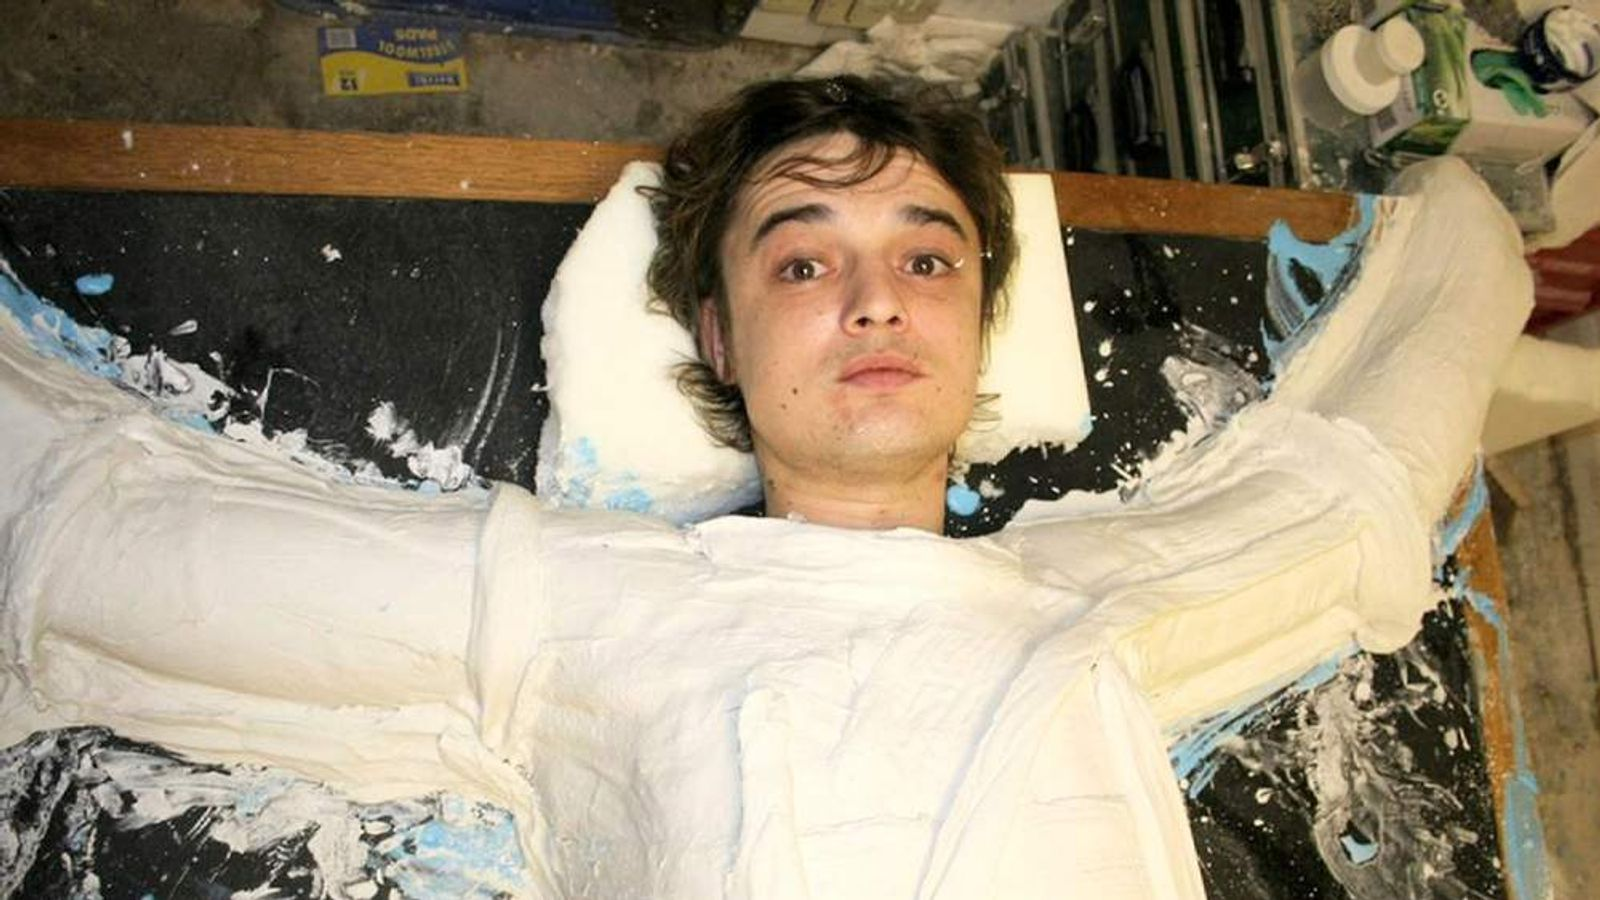 Pete Doherty Involved In Making Of Sculpture 'Crucified In The Media'